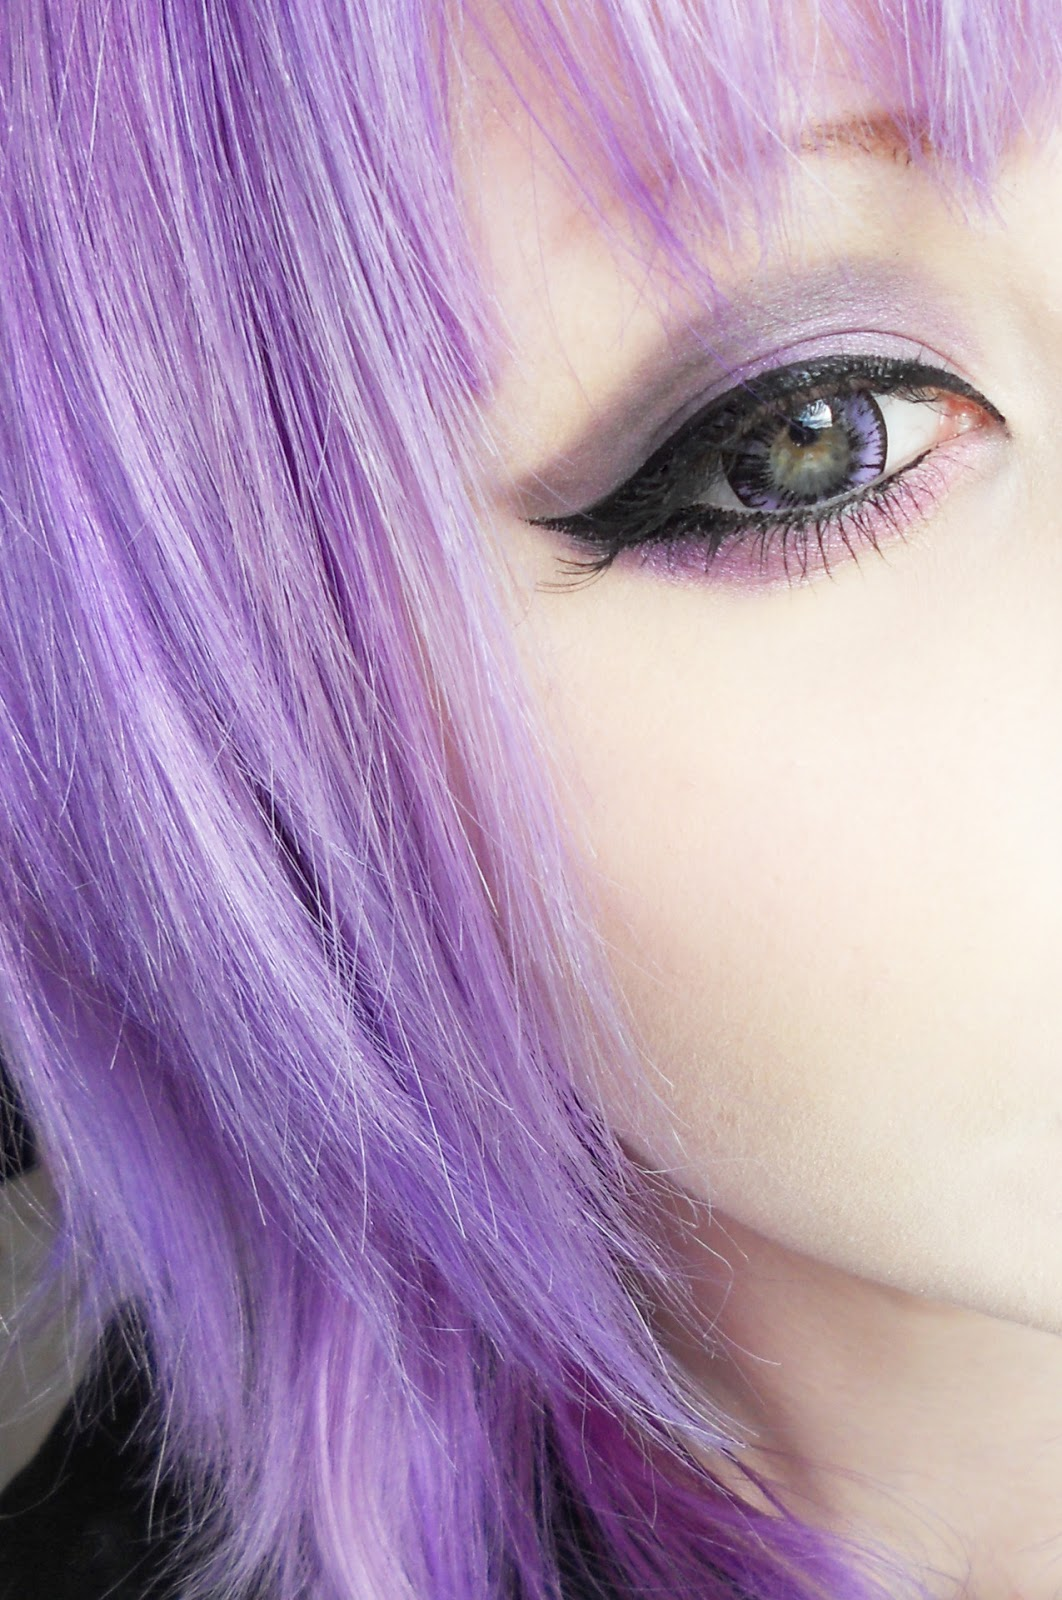 Girls With Light Purple Hair Tumblr Eoljjang World